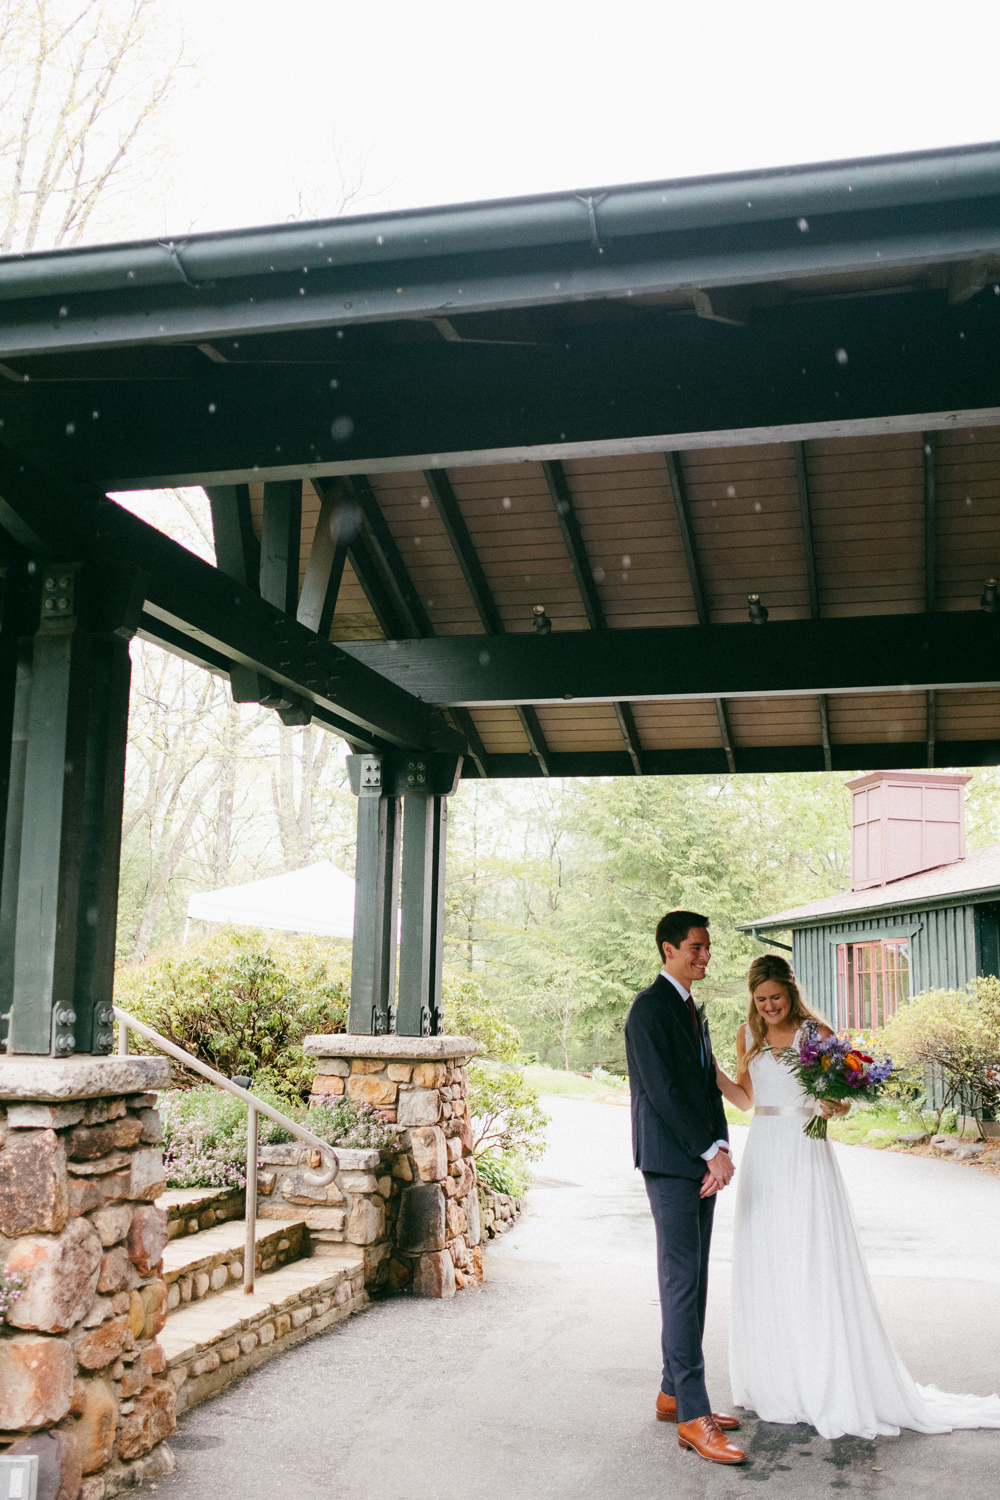 AshevilleWedding_RachelAndTyler_by_TheImageIsFound_0083.jpg